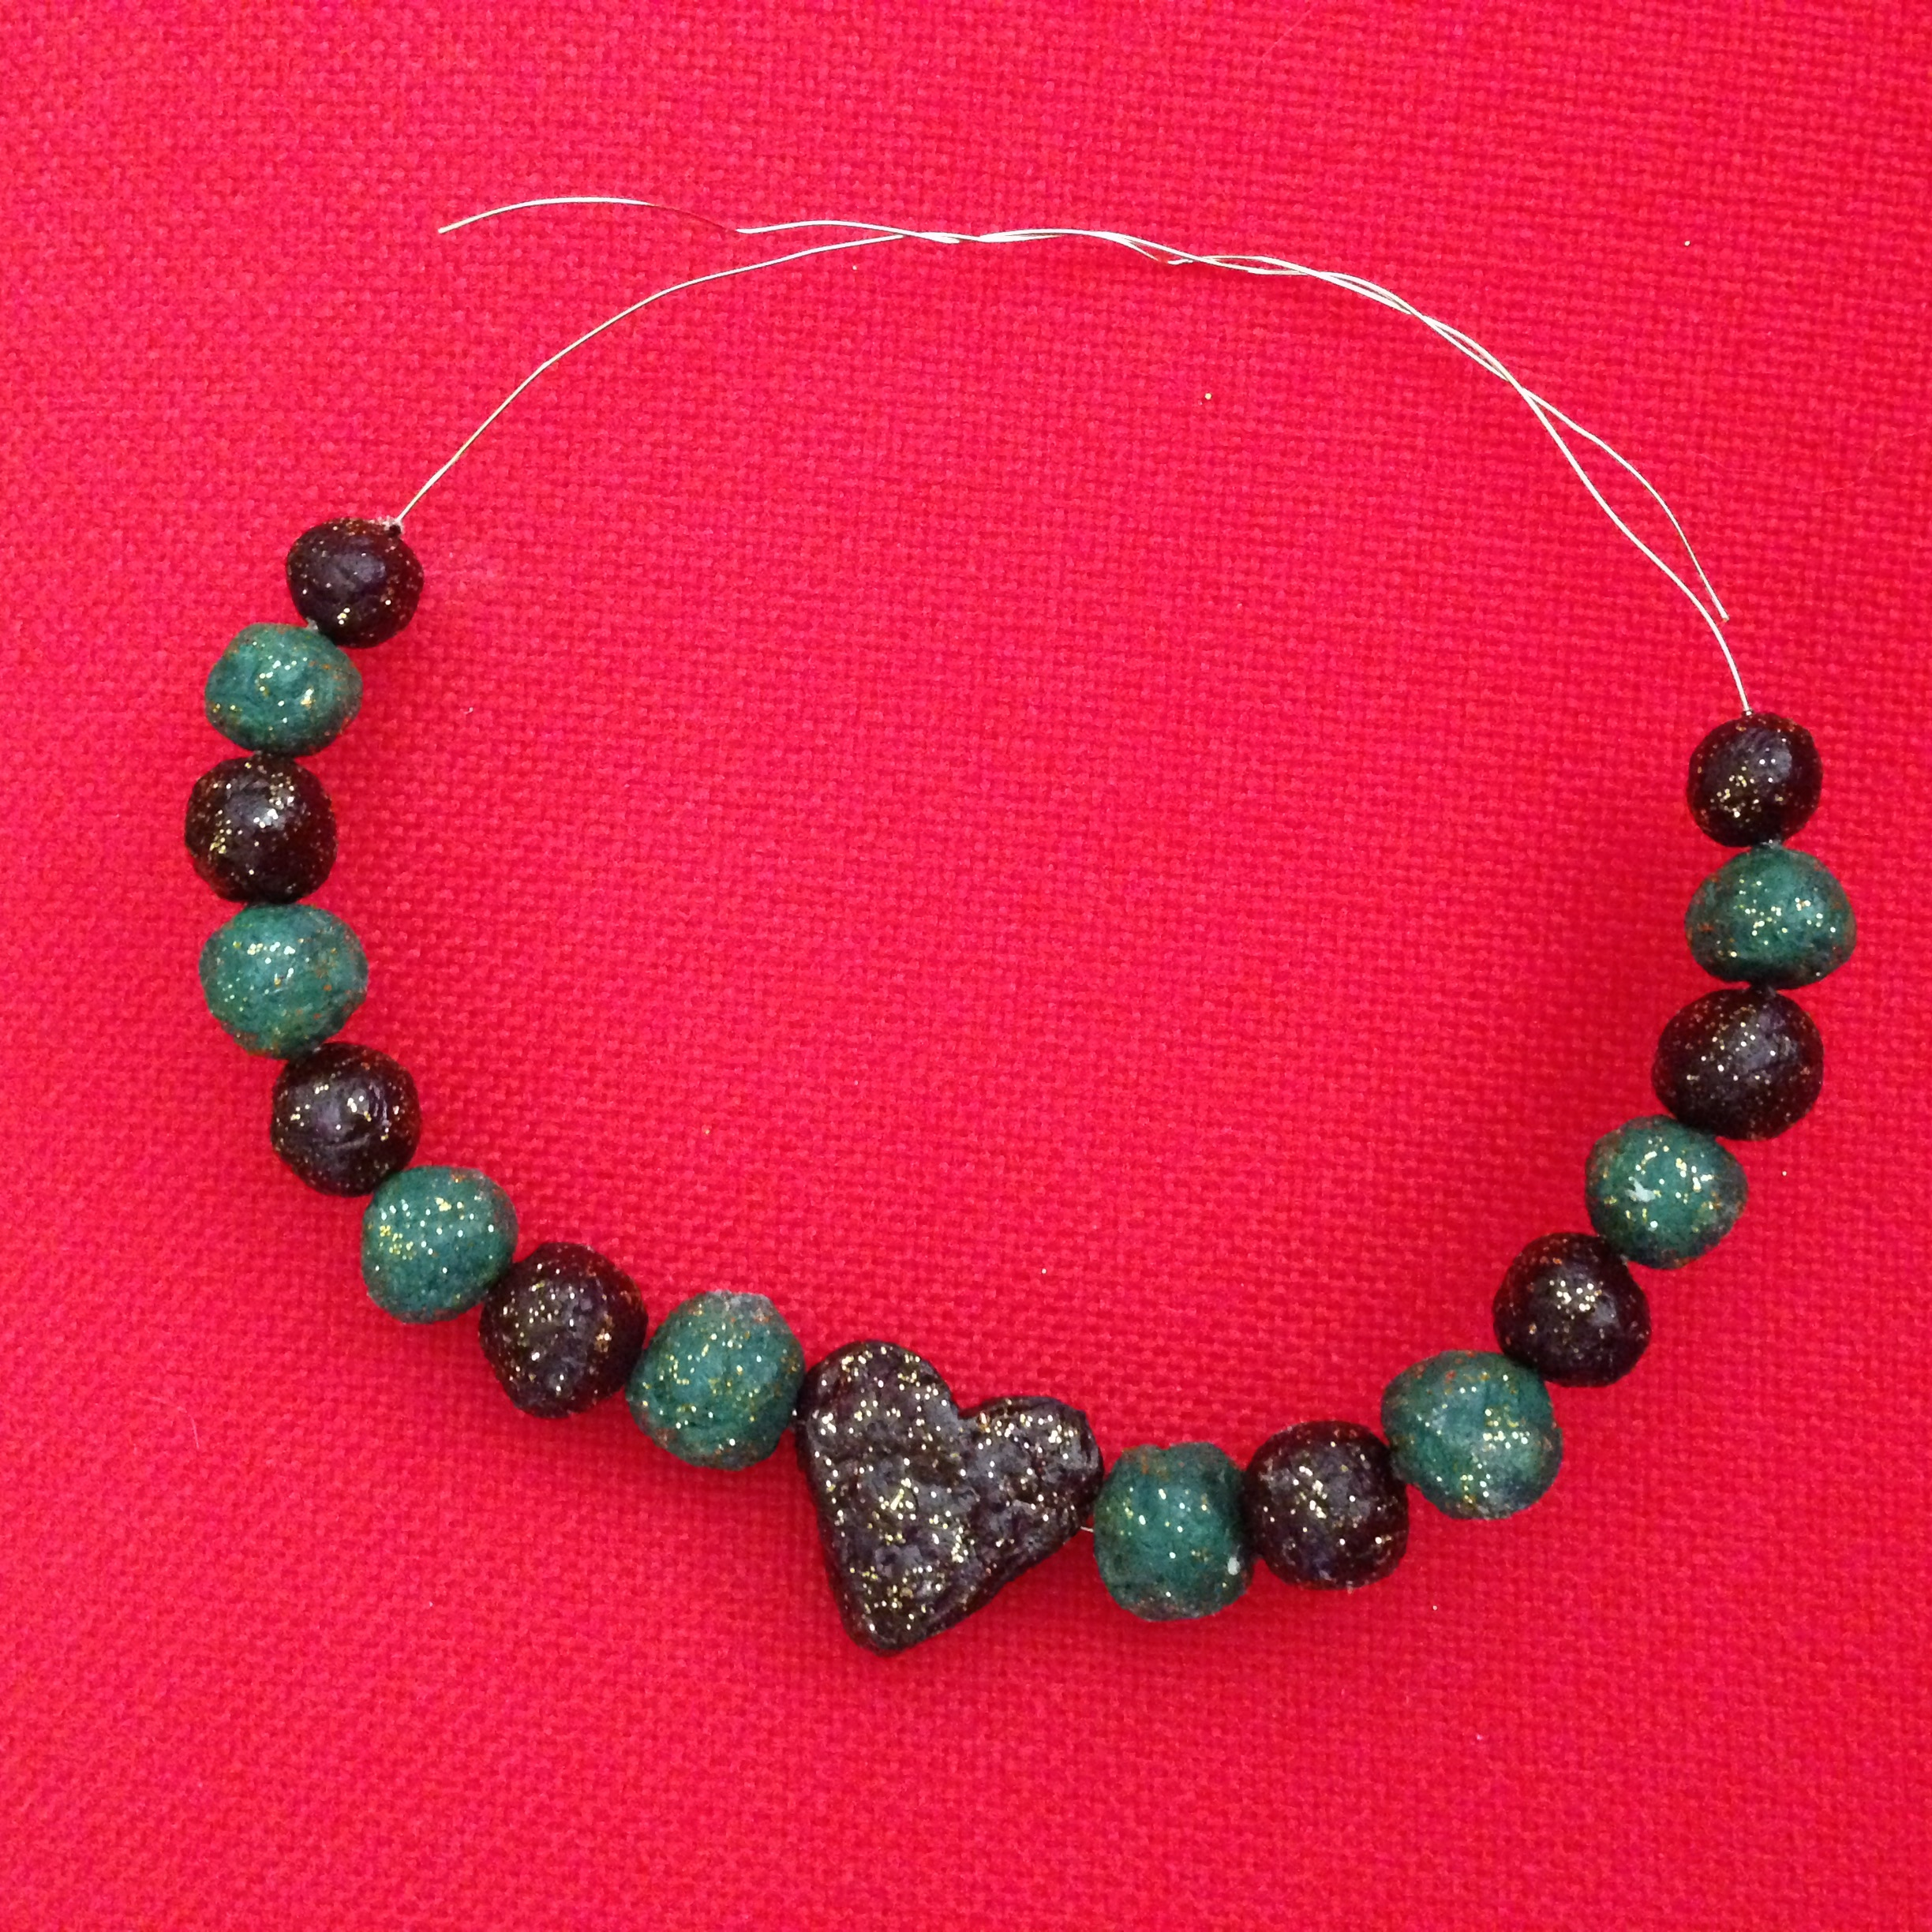 beads one choker on form mache paper necklace etsy pin items similar this to tribal washed primitive patterns with silver nugget large